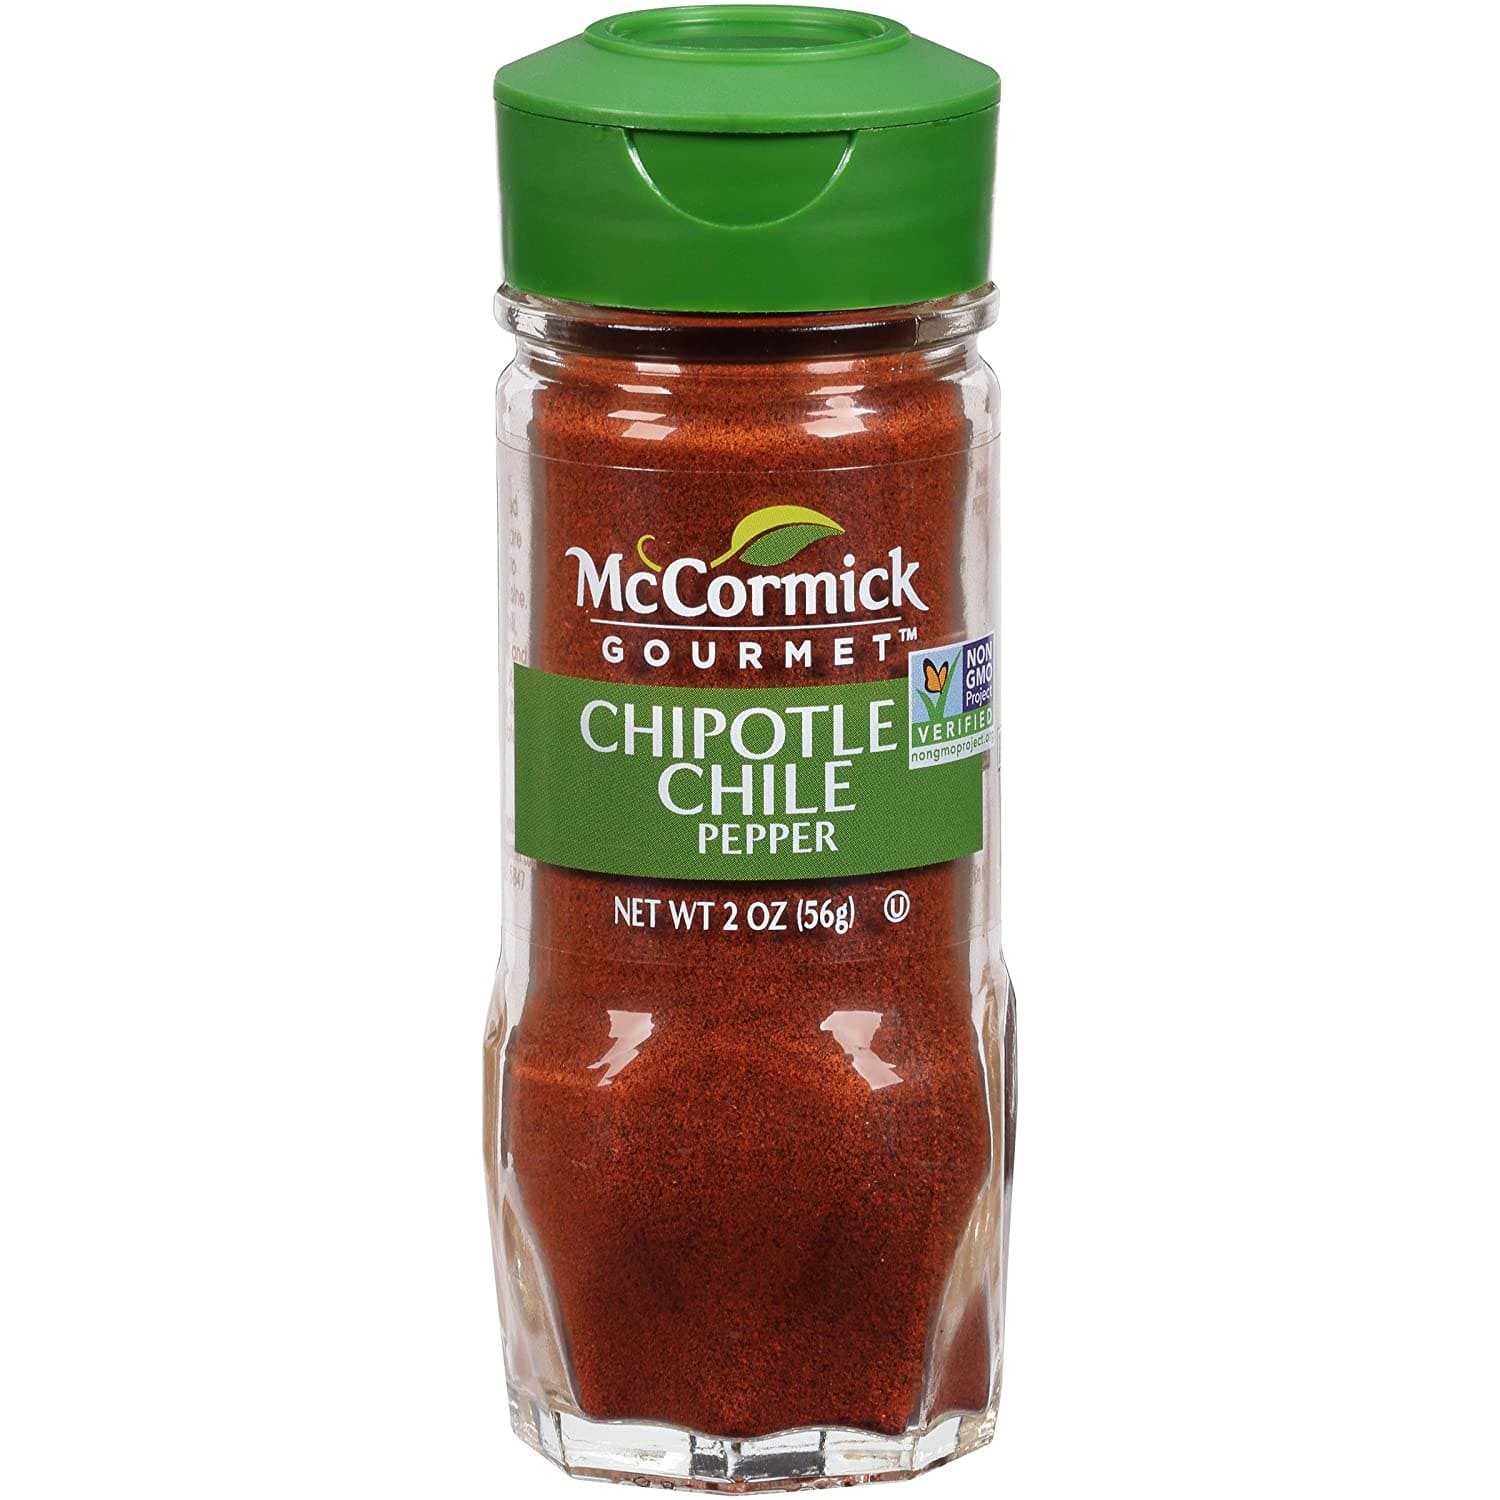 2-Oz McCormick Gourmet Chipotle Chile Pepper $2.85 w/ S&S + Free S&H w/ Prime or $25+